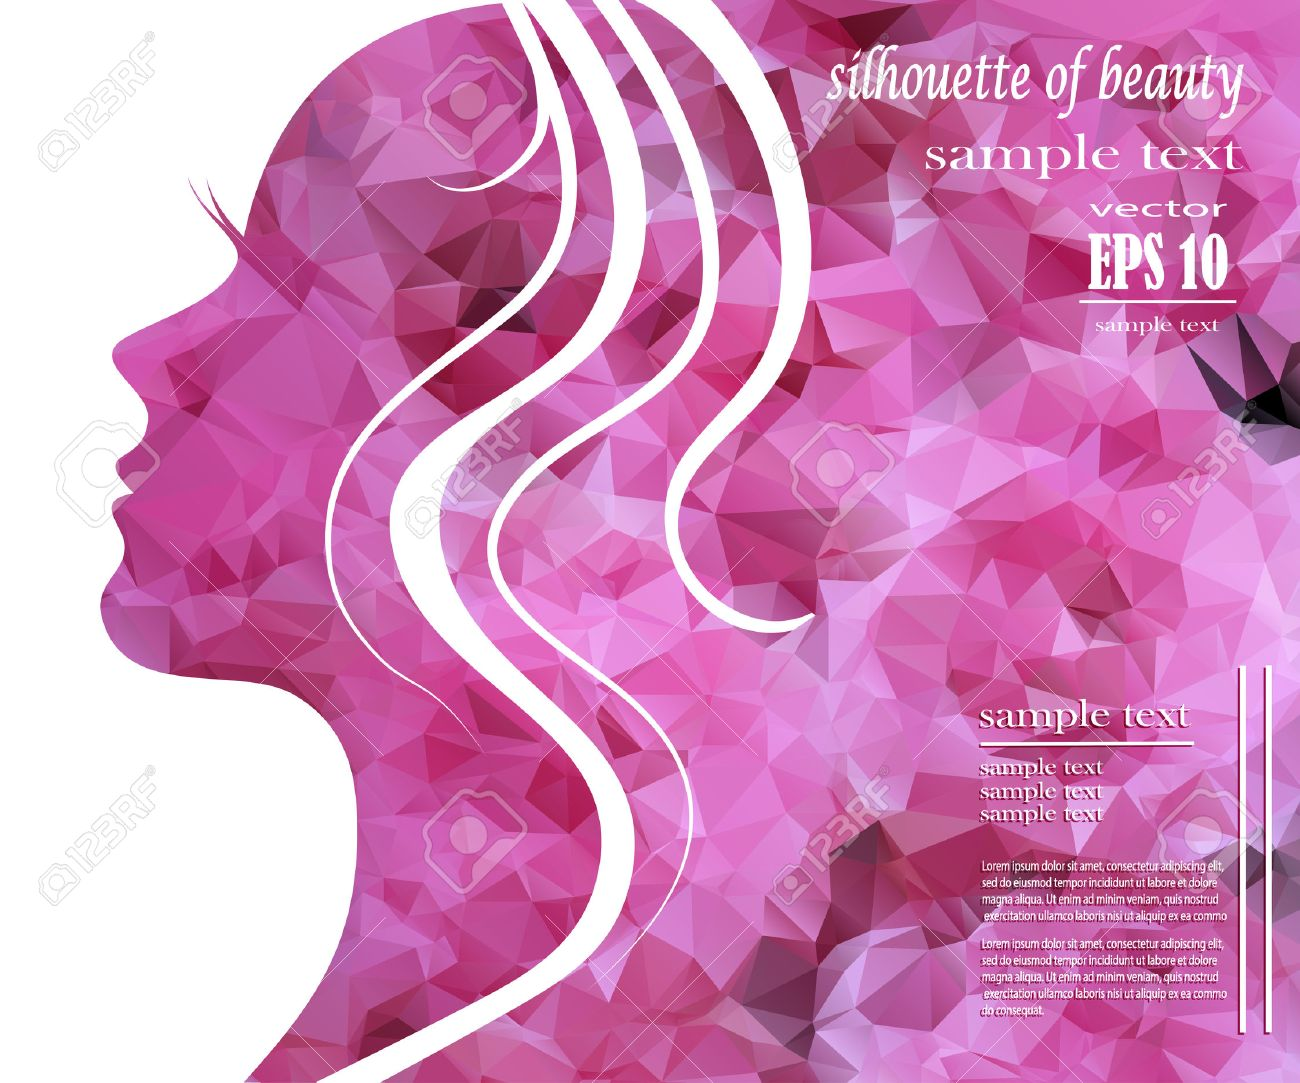 Beautiful Girl Silhouette With Colorful Hair Vector Background Royalty Free Cliparts Vectors And Stock Illustration Image 38162251